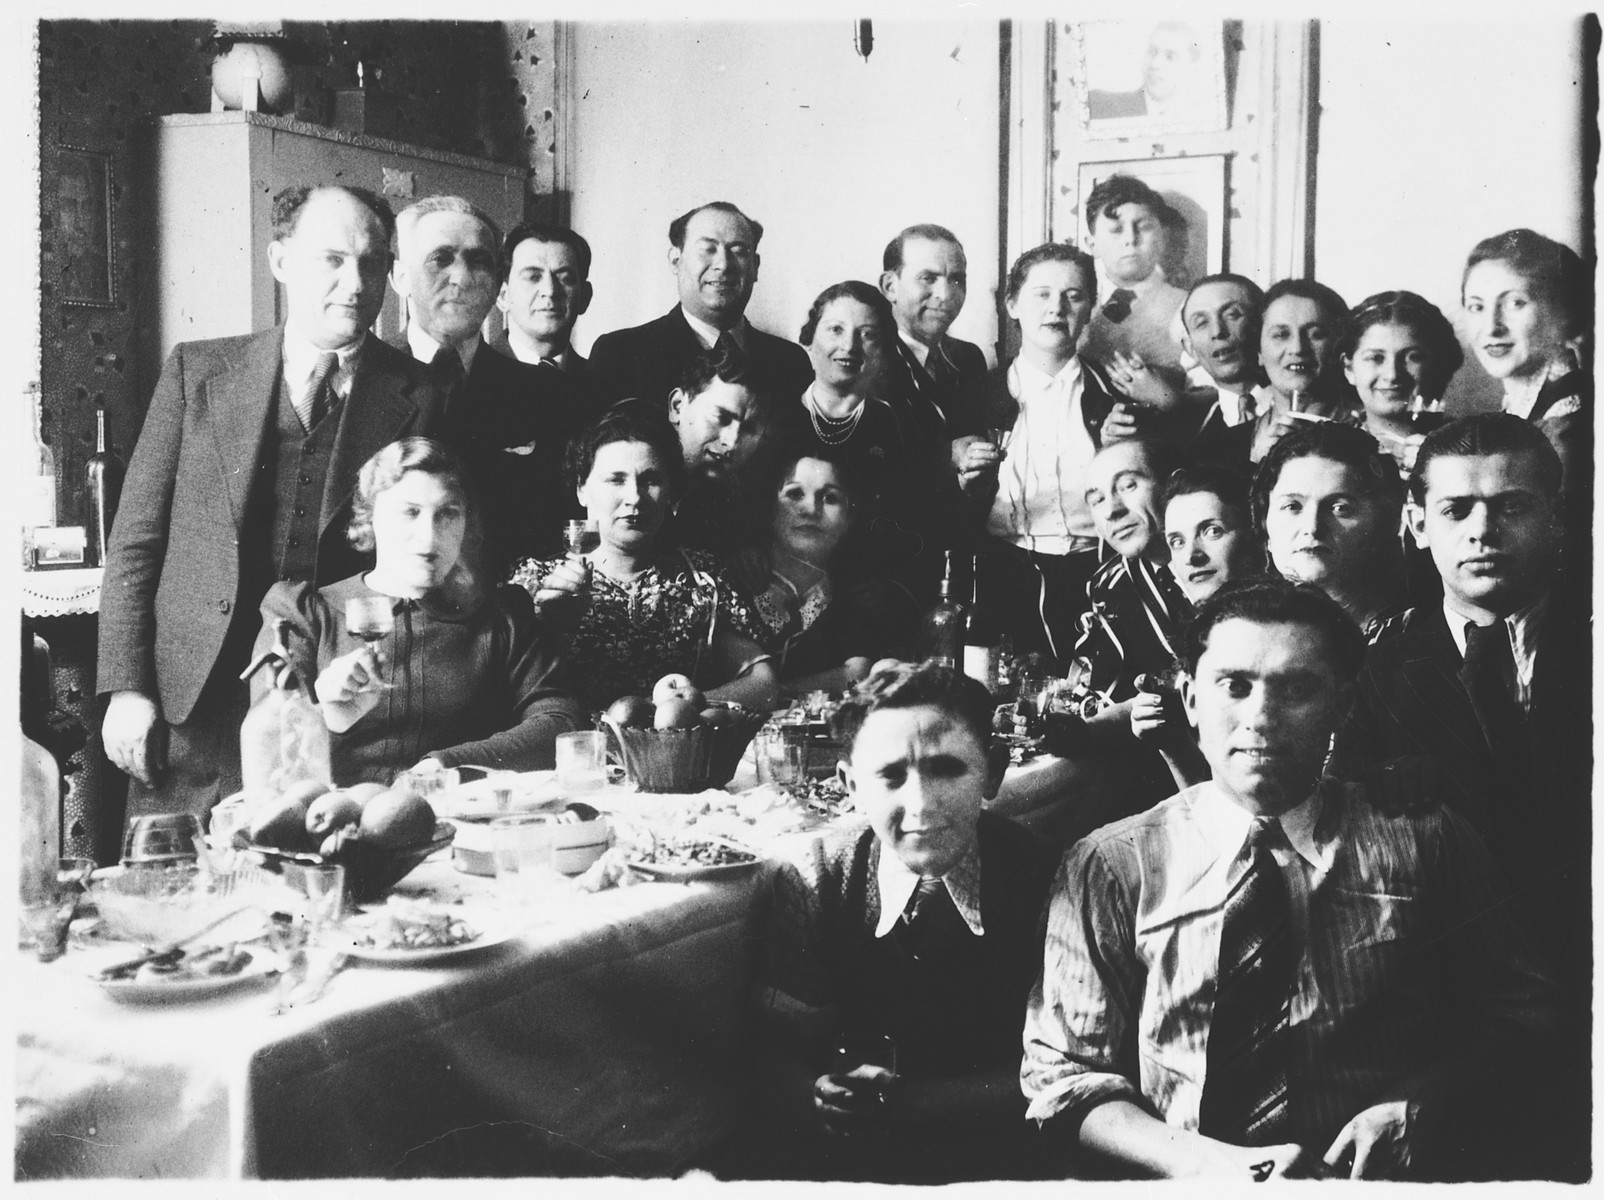 Group portrait of family and friends who have gathered to celebrate the Aufruf (pre-wedding ceremony) of Leah Mendelowicz and Alex Ciechanow.  Among those pictured are Alex Ciechanow (at the bottom right), Leah Mendelowicz (second row from the front, third from the right), and Fani Mendelowicz (second row from the front, second from the right).